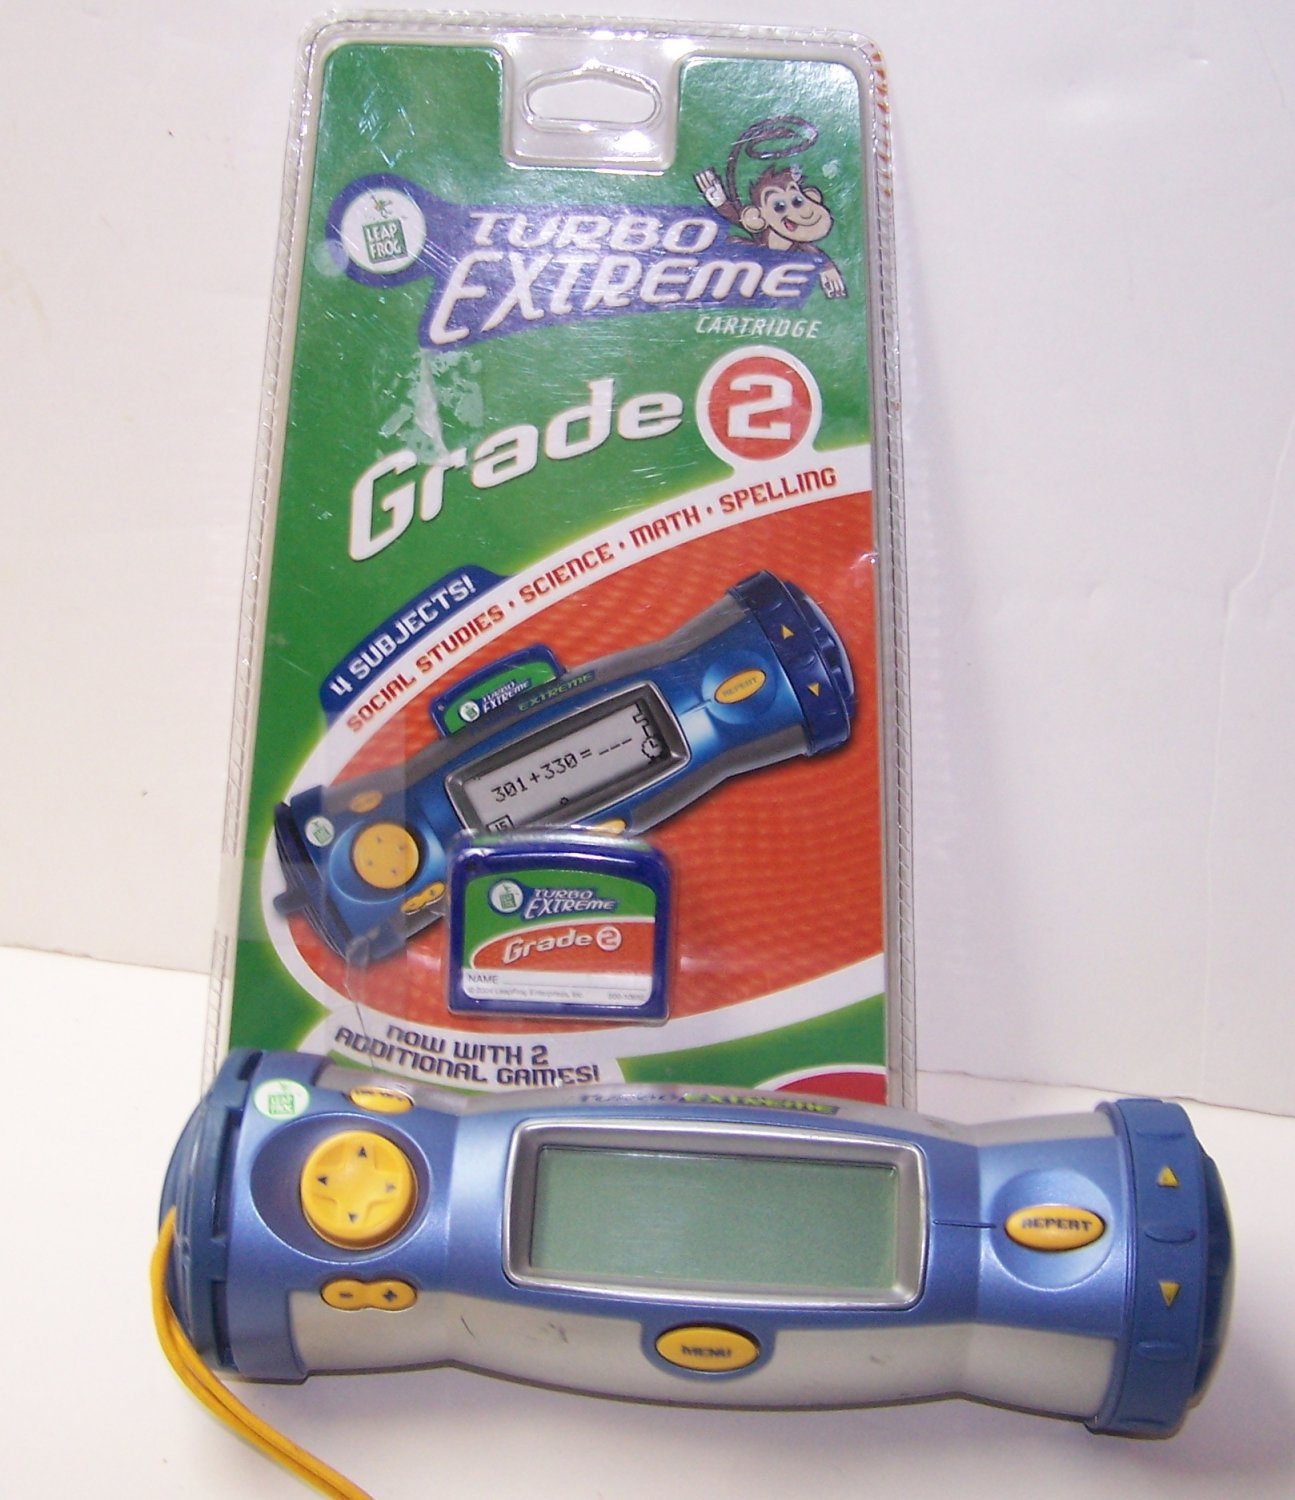 LeapFrog Turbo Extreme Handheld system  with Grade 2 Cartridge